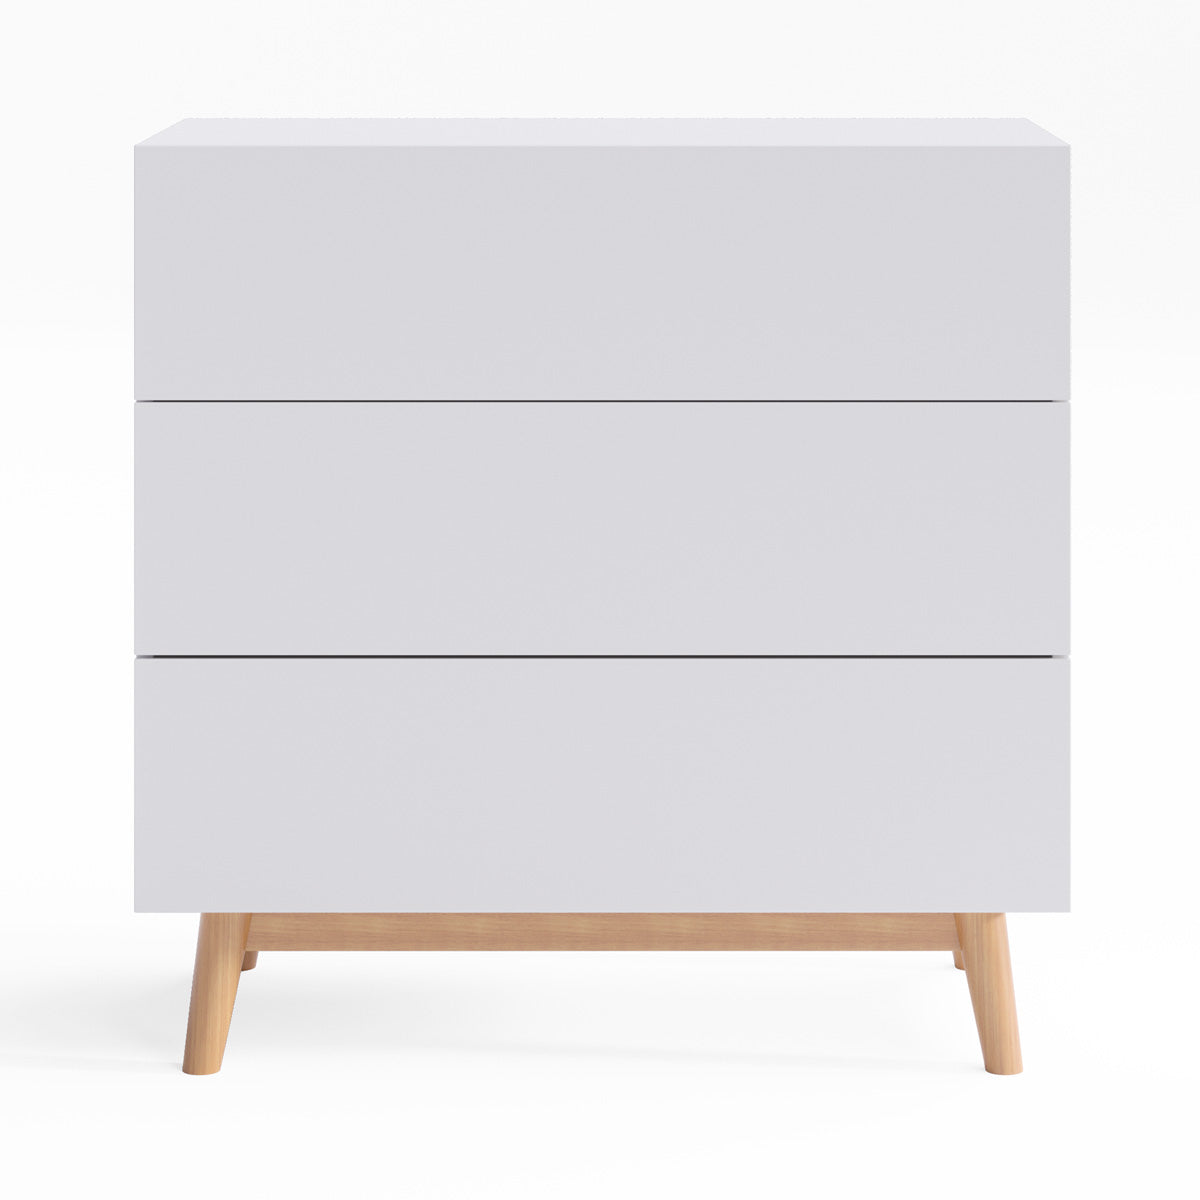 White Three Drawer Wooden Bedroom Chest of Drawers (Aspen)